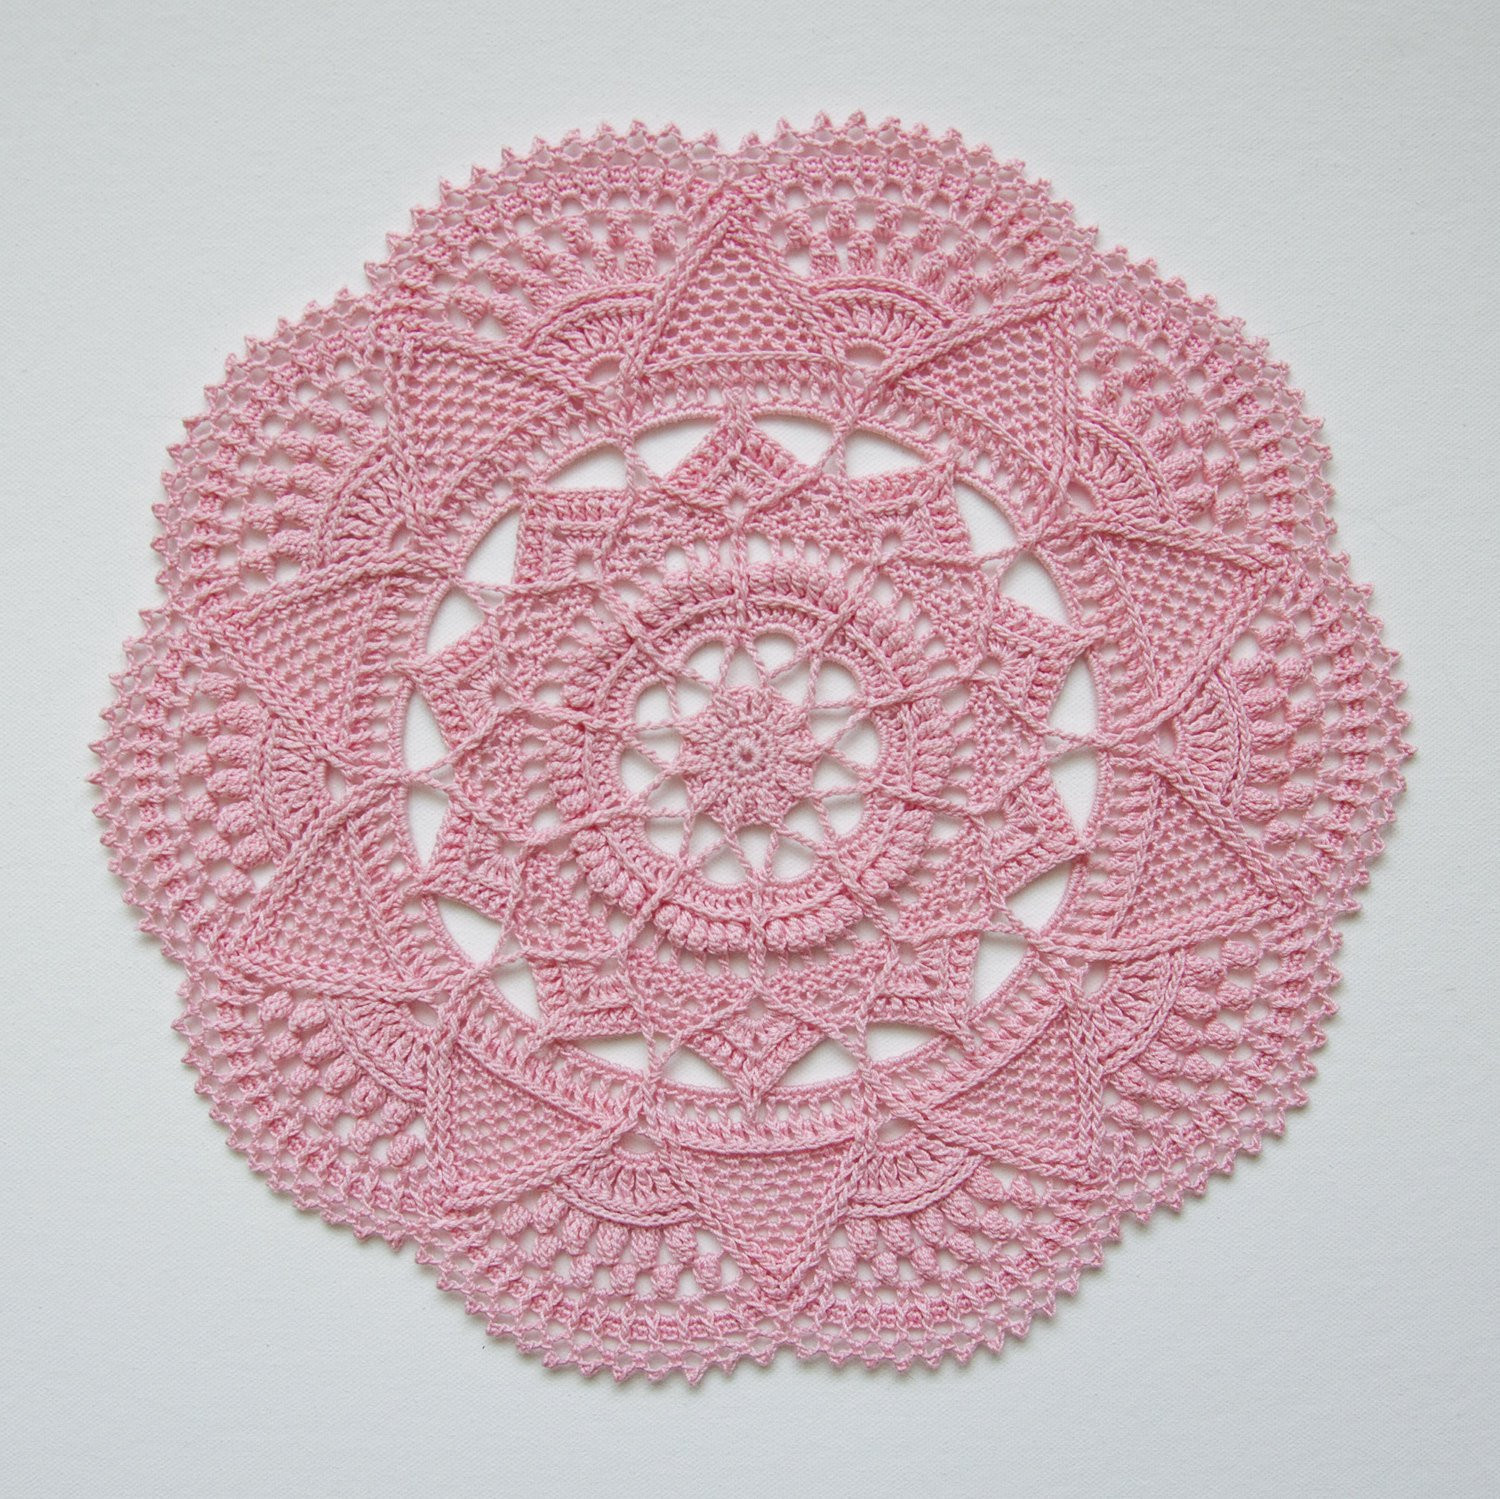 Doily Patterns Fresh Crochet Doily Pattern Taala Instant From Of Innovative 50 Models Doily Patterns